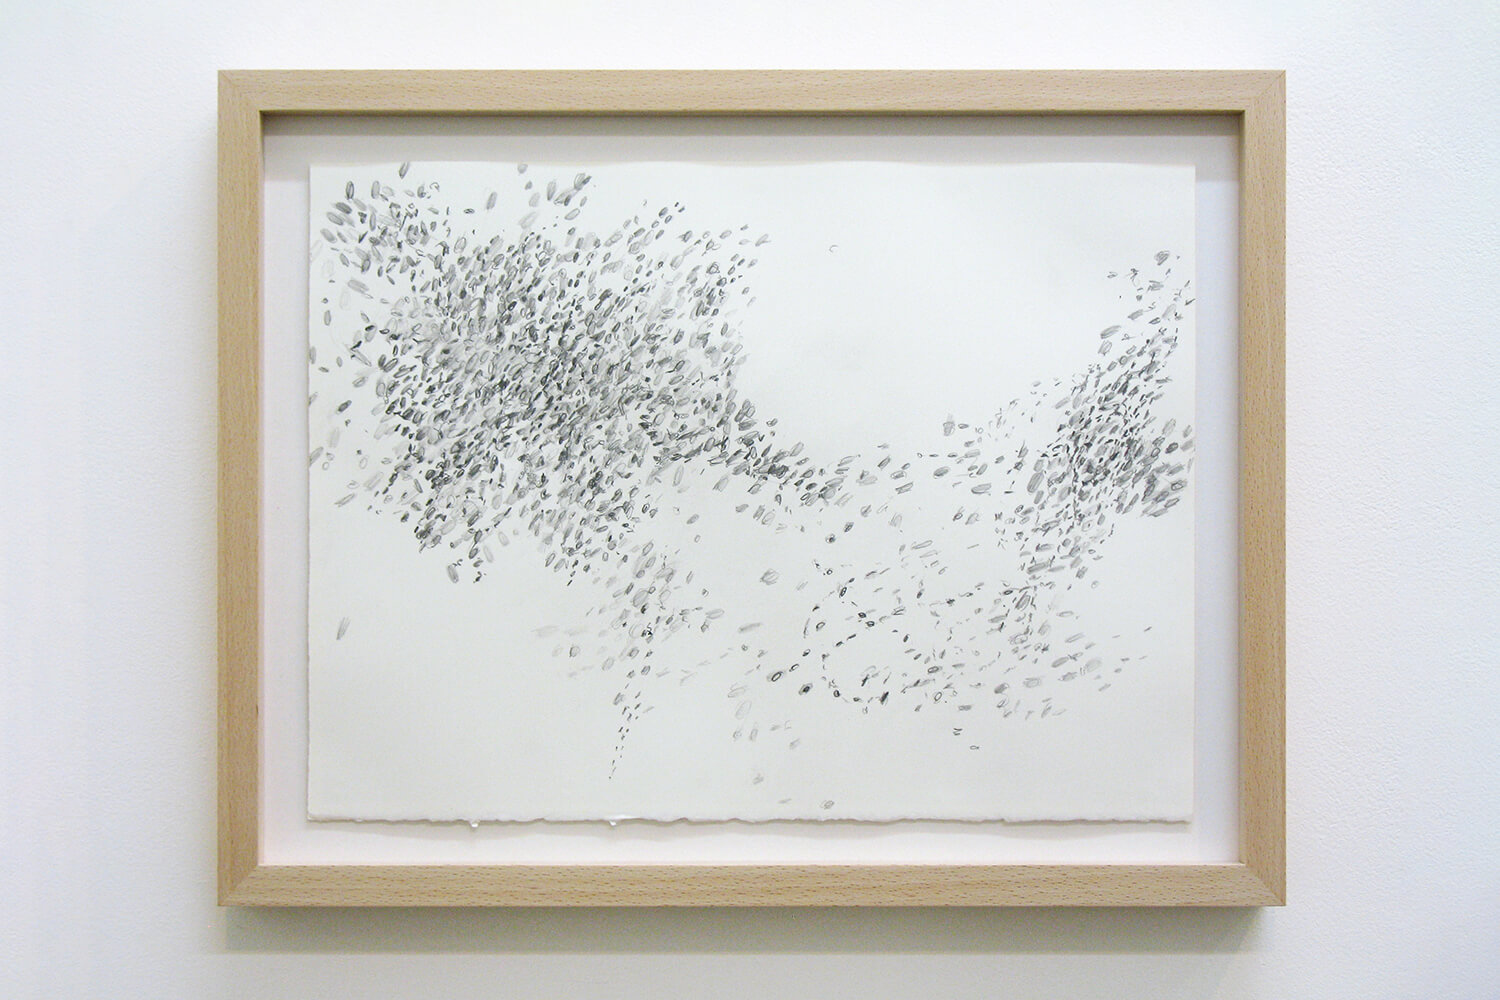 When the Dust Settles (d12)<br>Pencil on paper, 28.5 x 38 cm, 2011